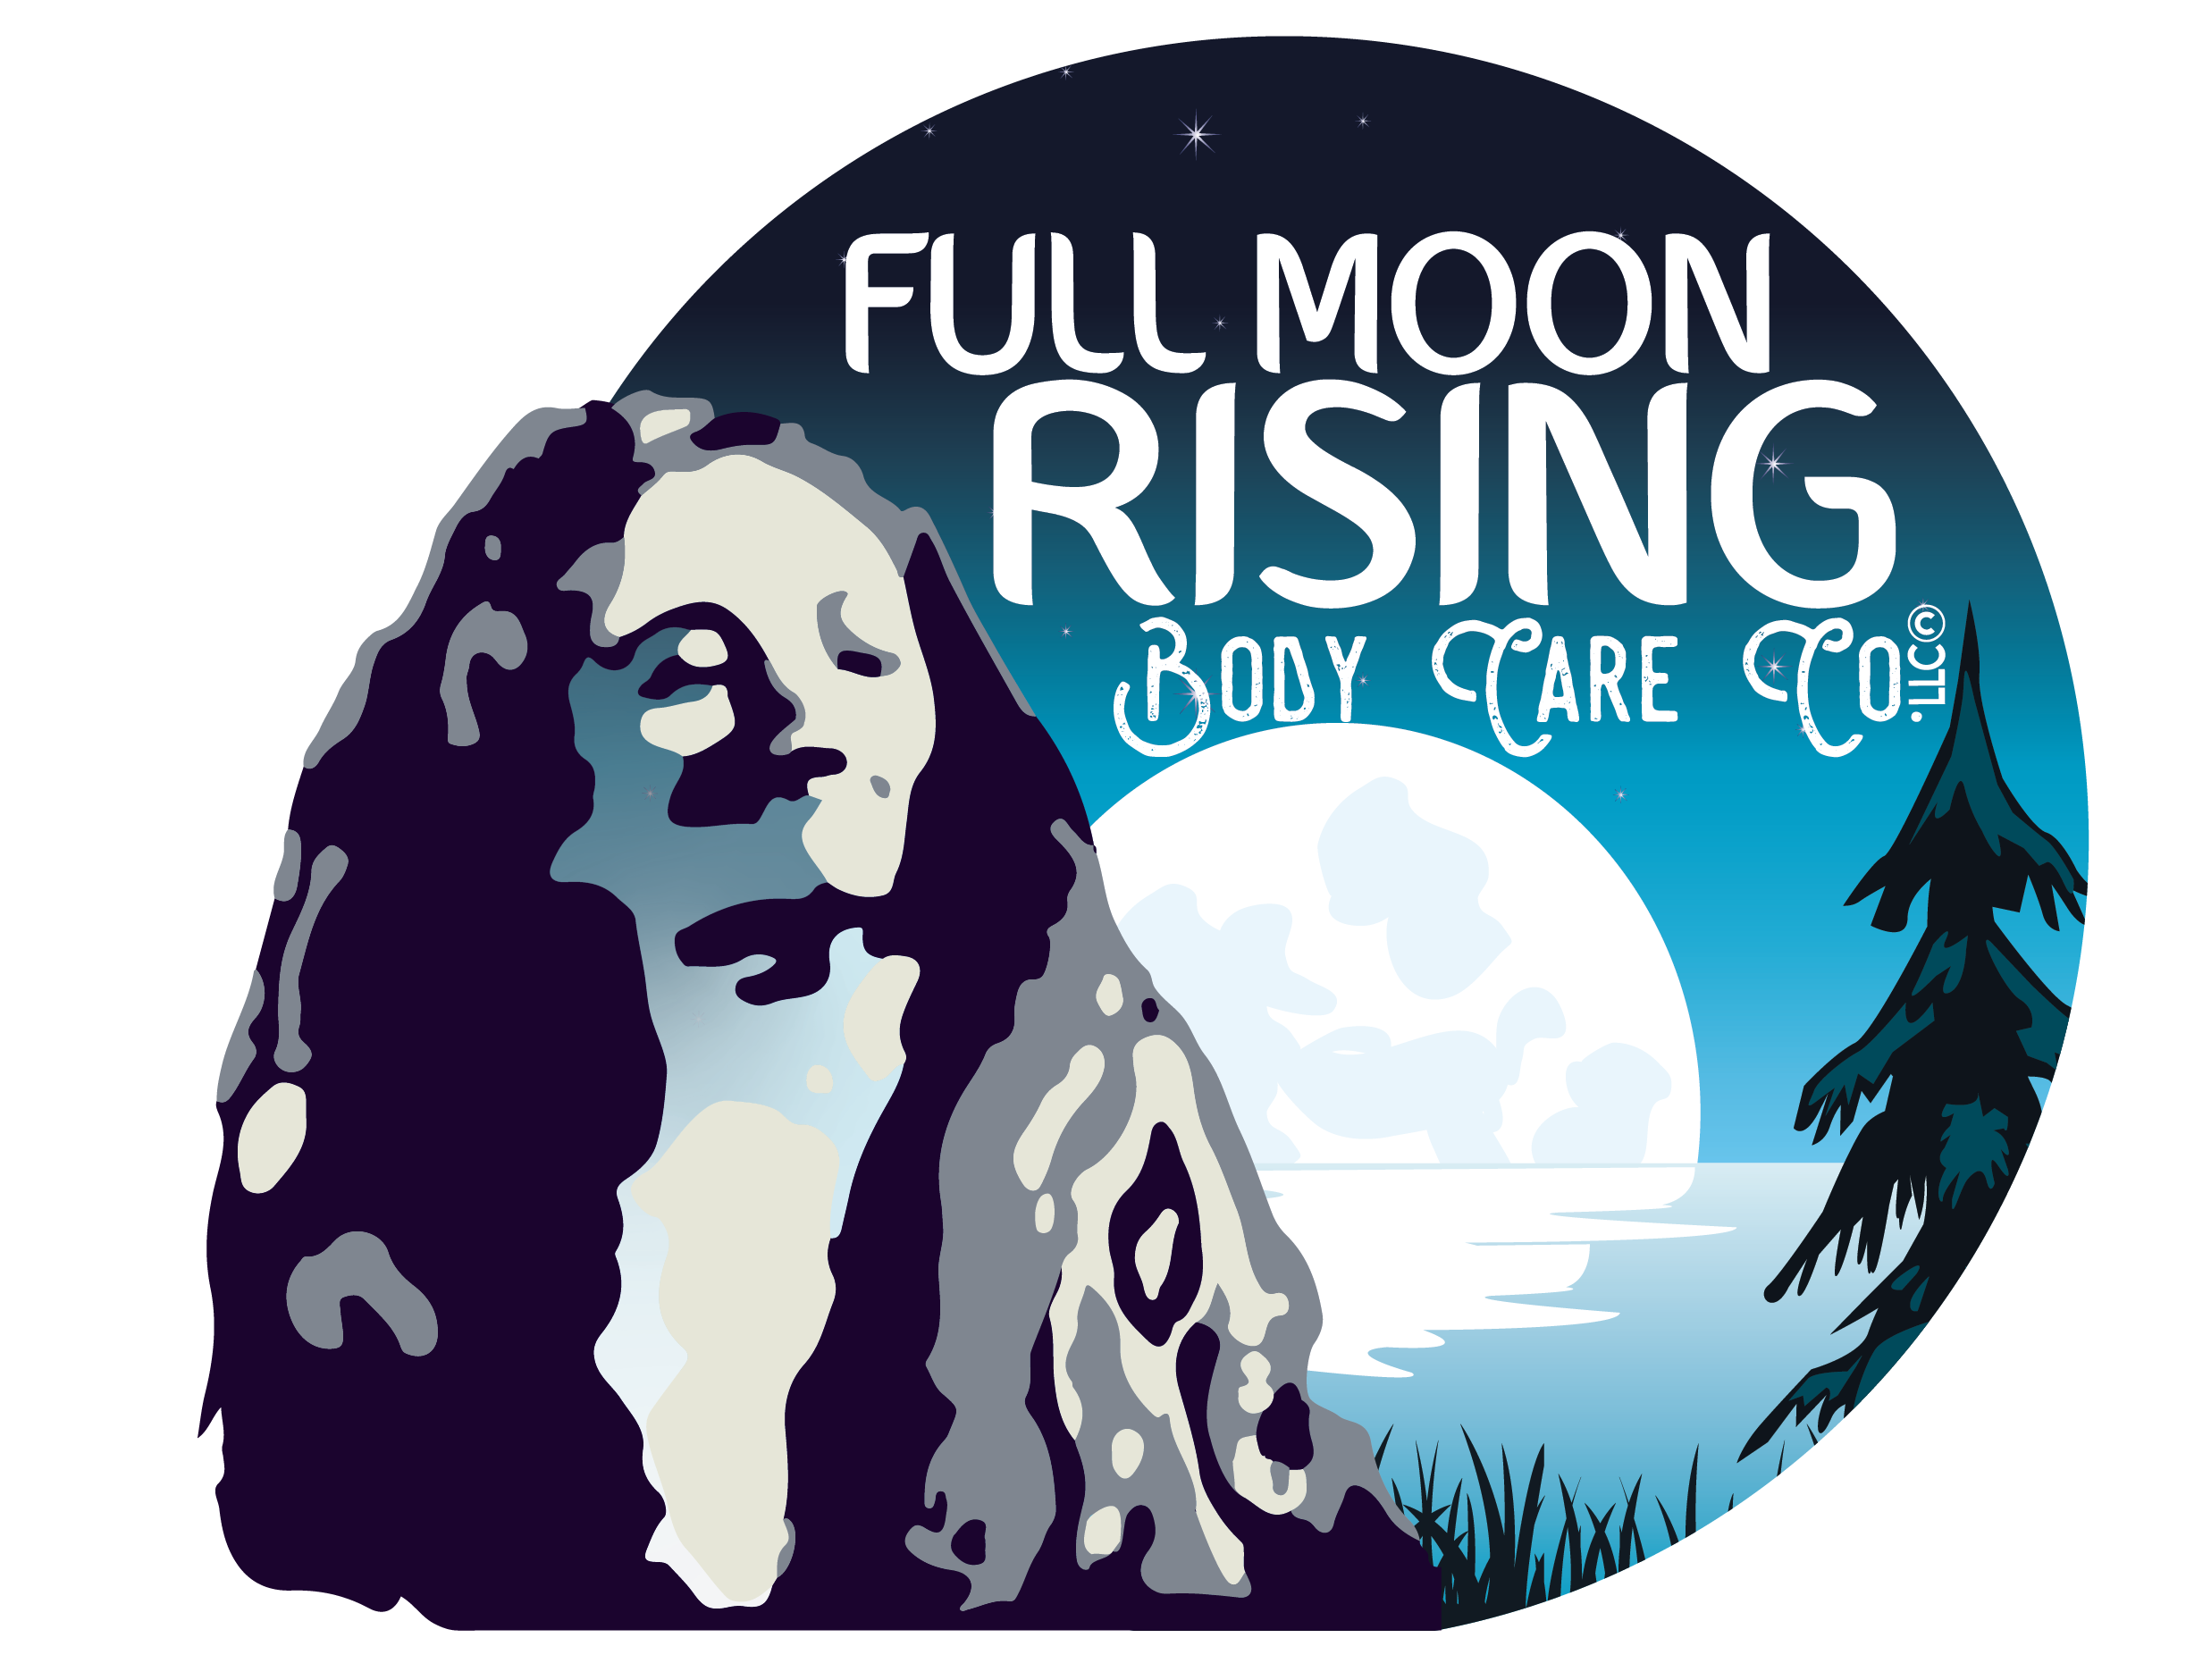 Full Moon Rising Body Care Co